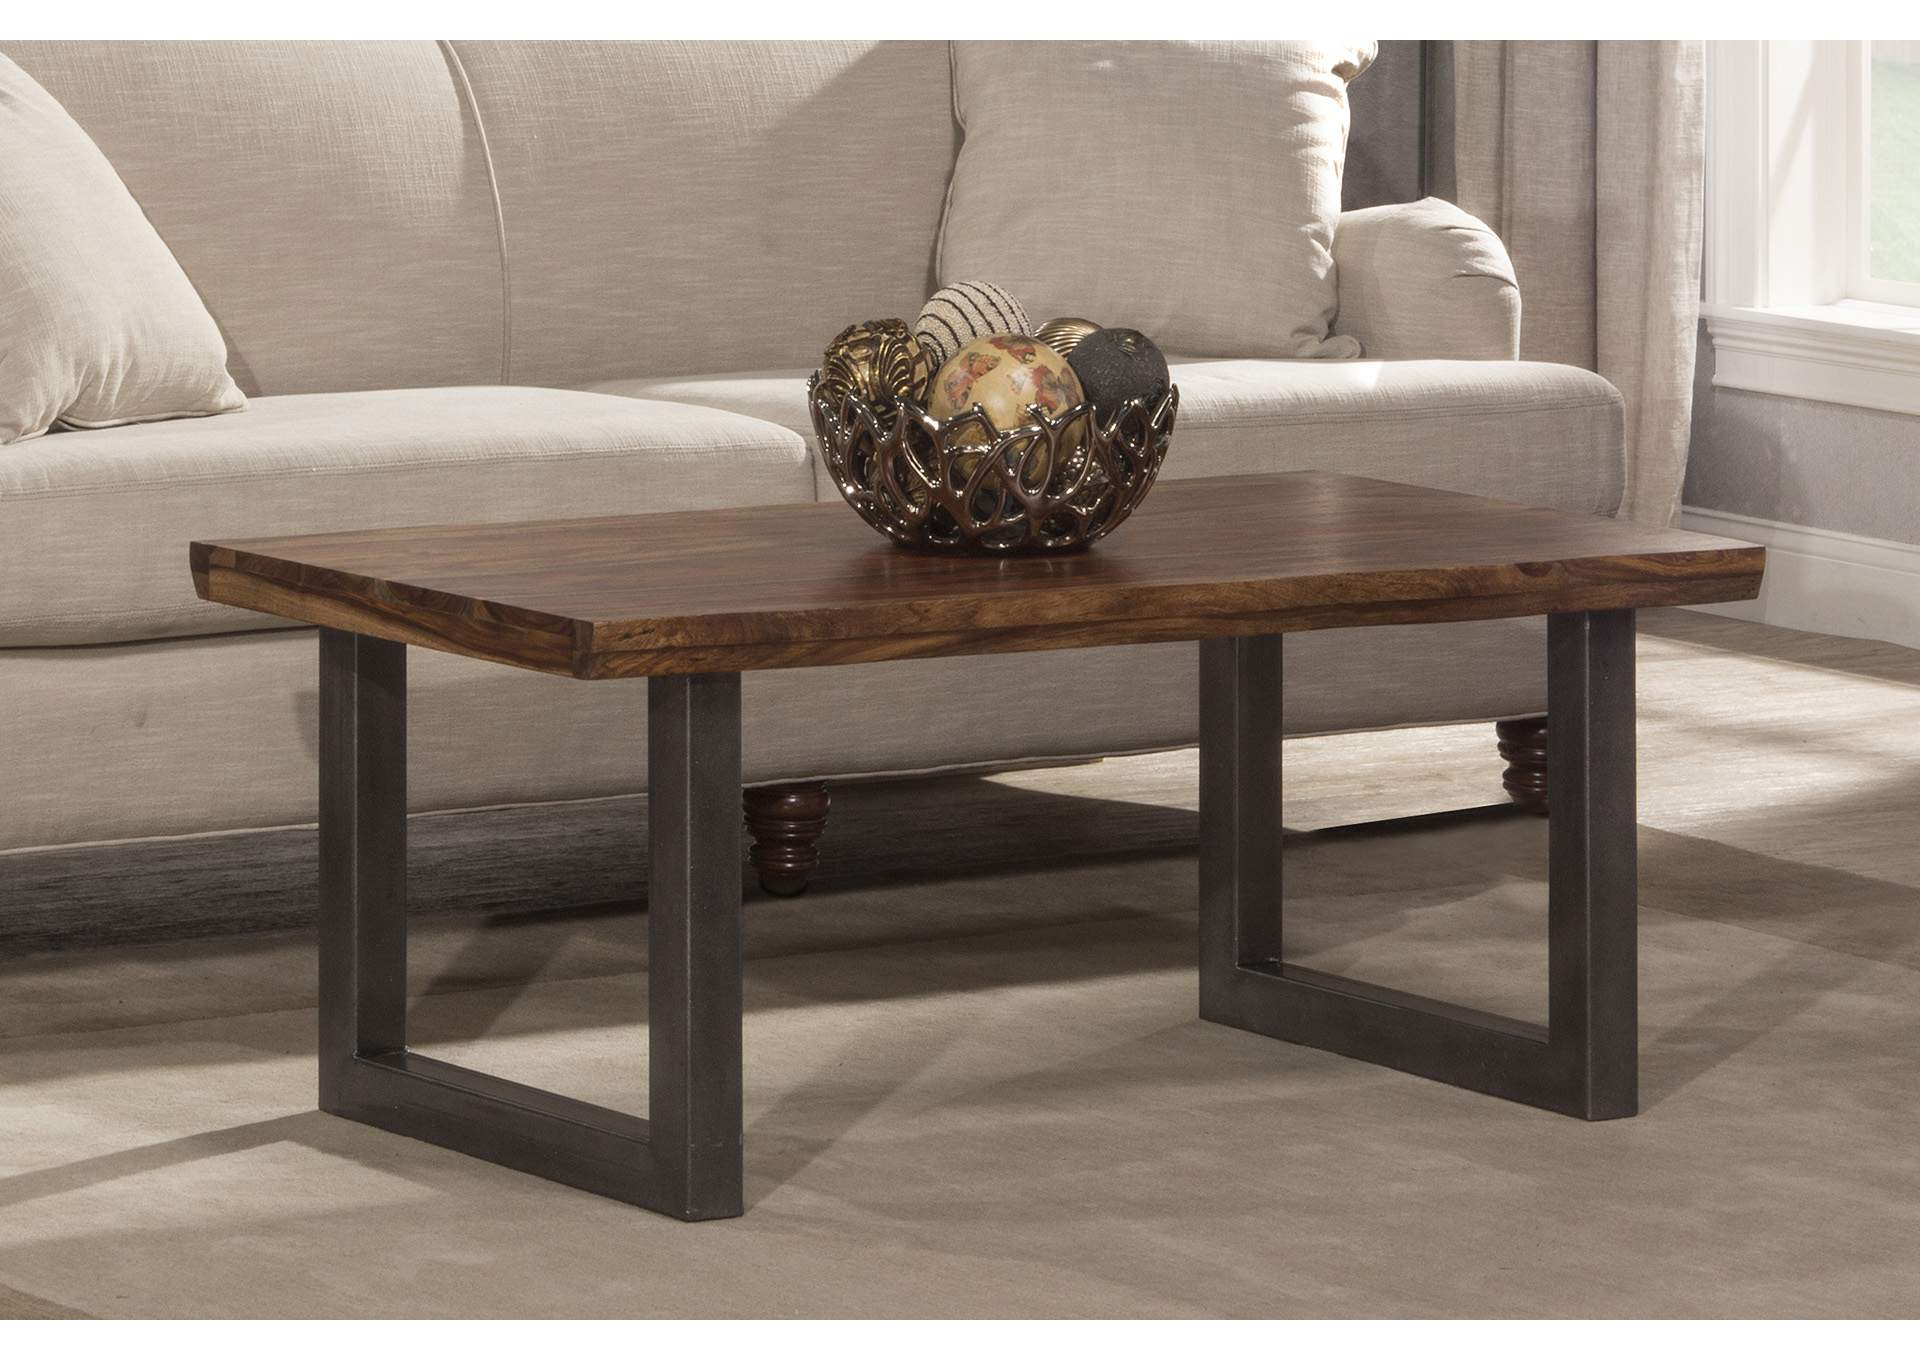 Fabulous Penlands Furniture Emerson Coffee Table Pdpeps Interior Chair Design Pdpepsorg